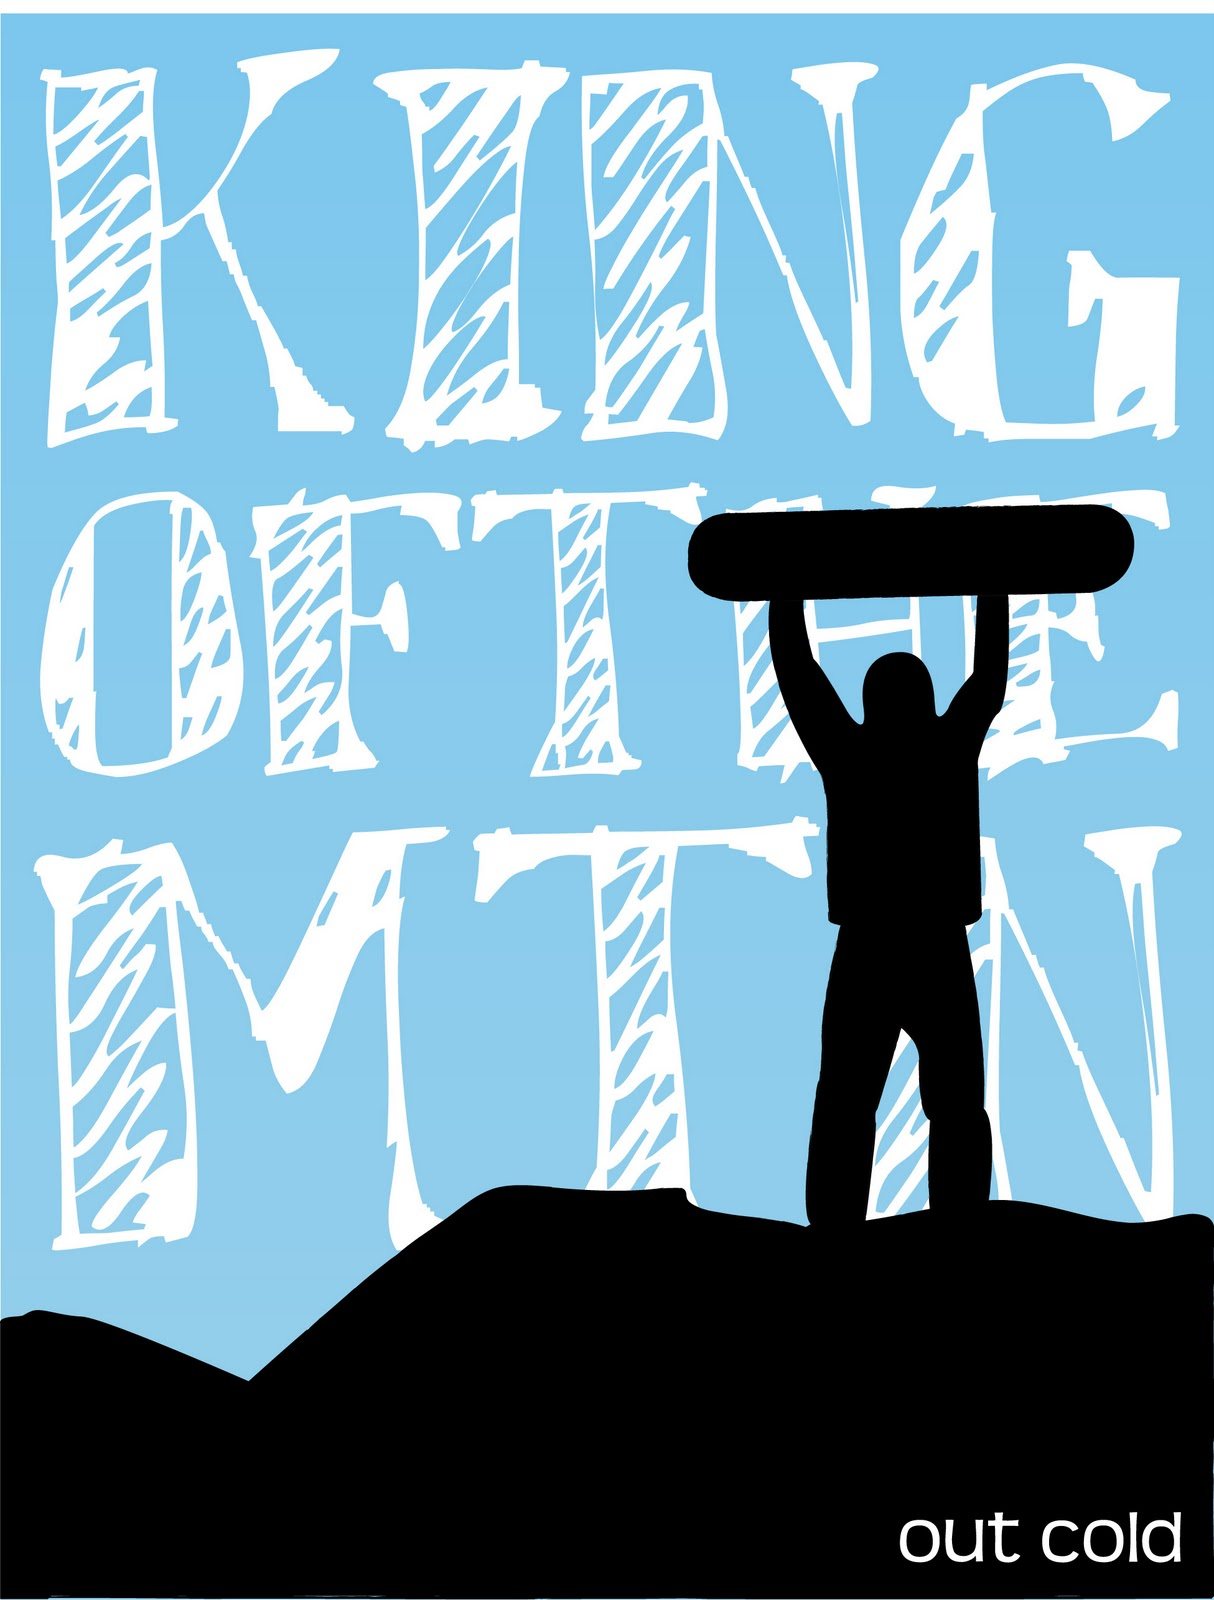 Out cold movie king of the mountain